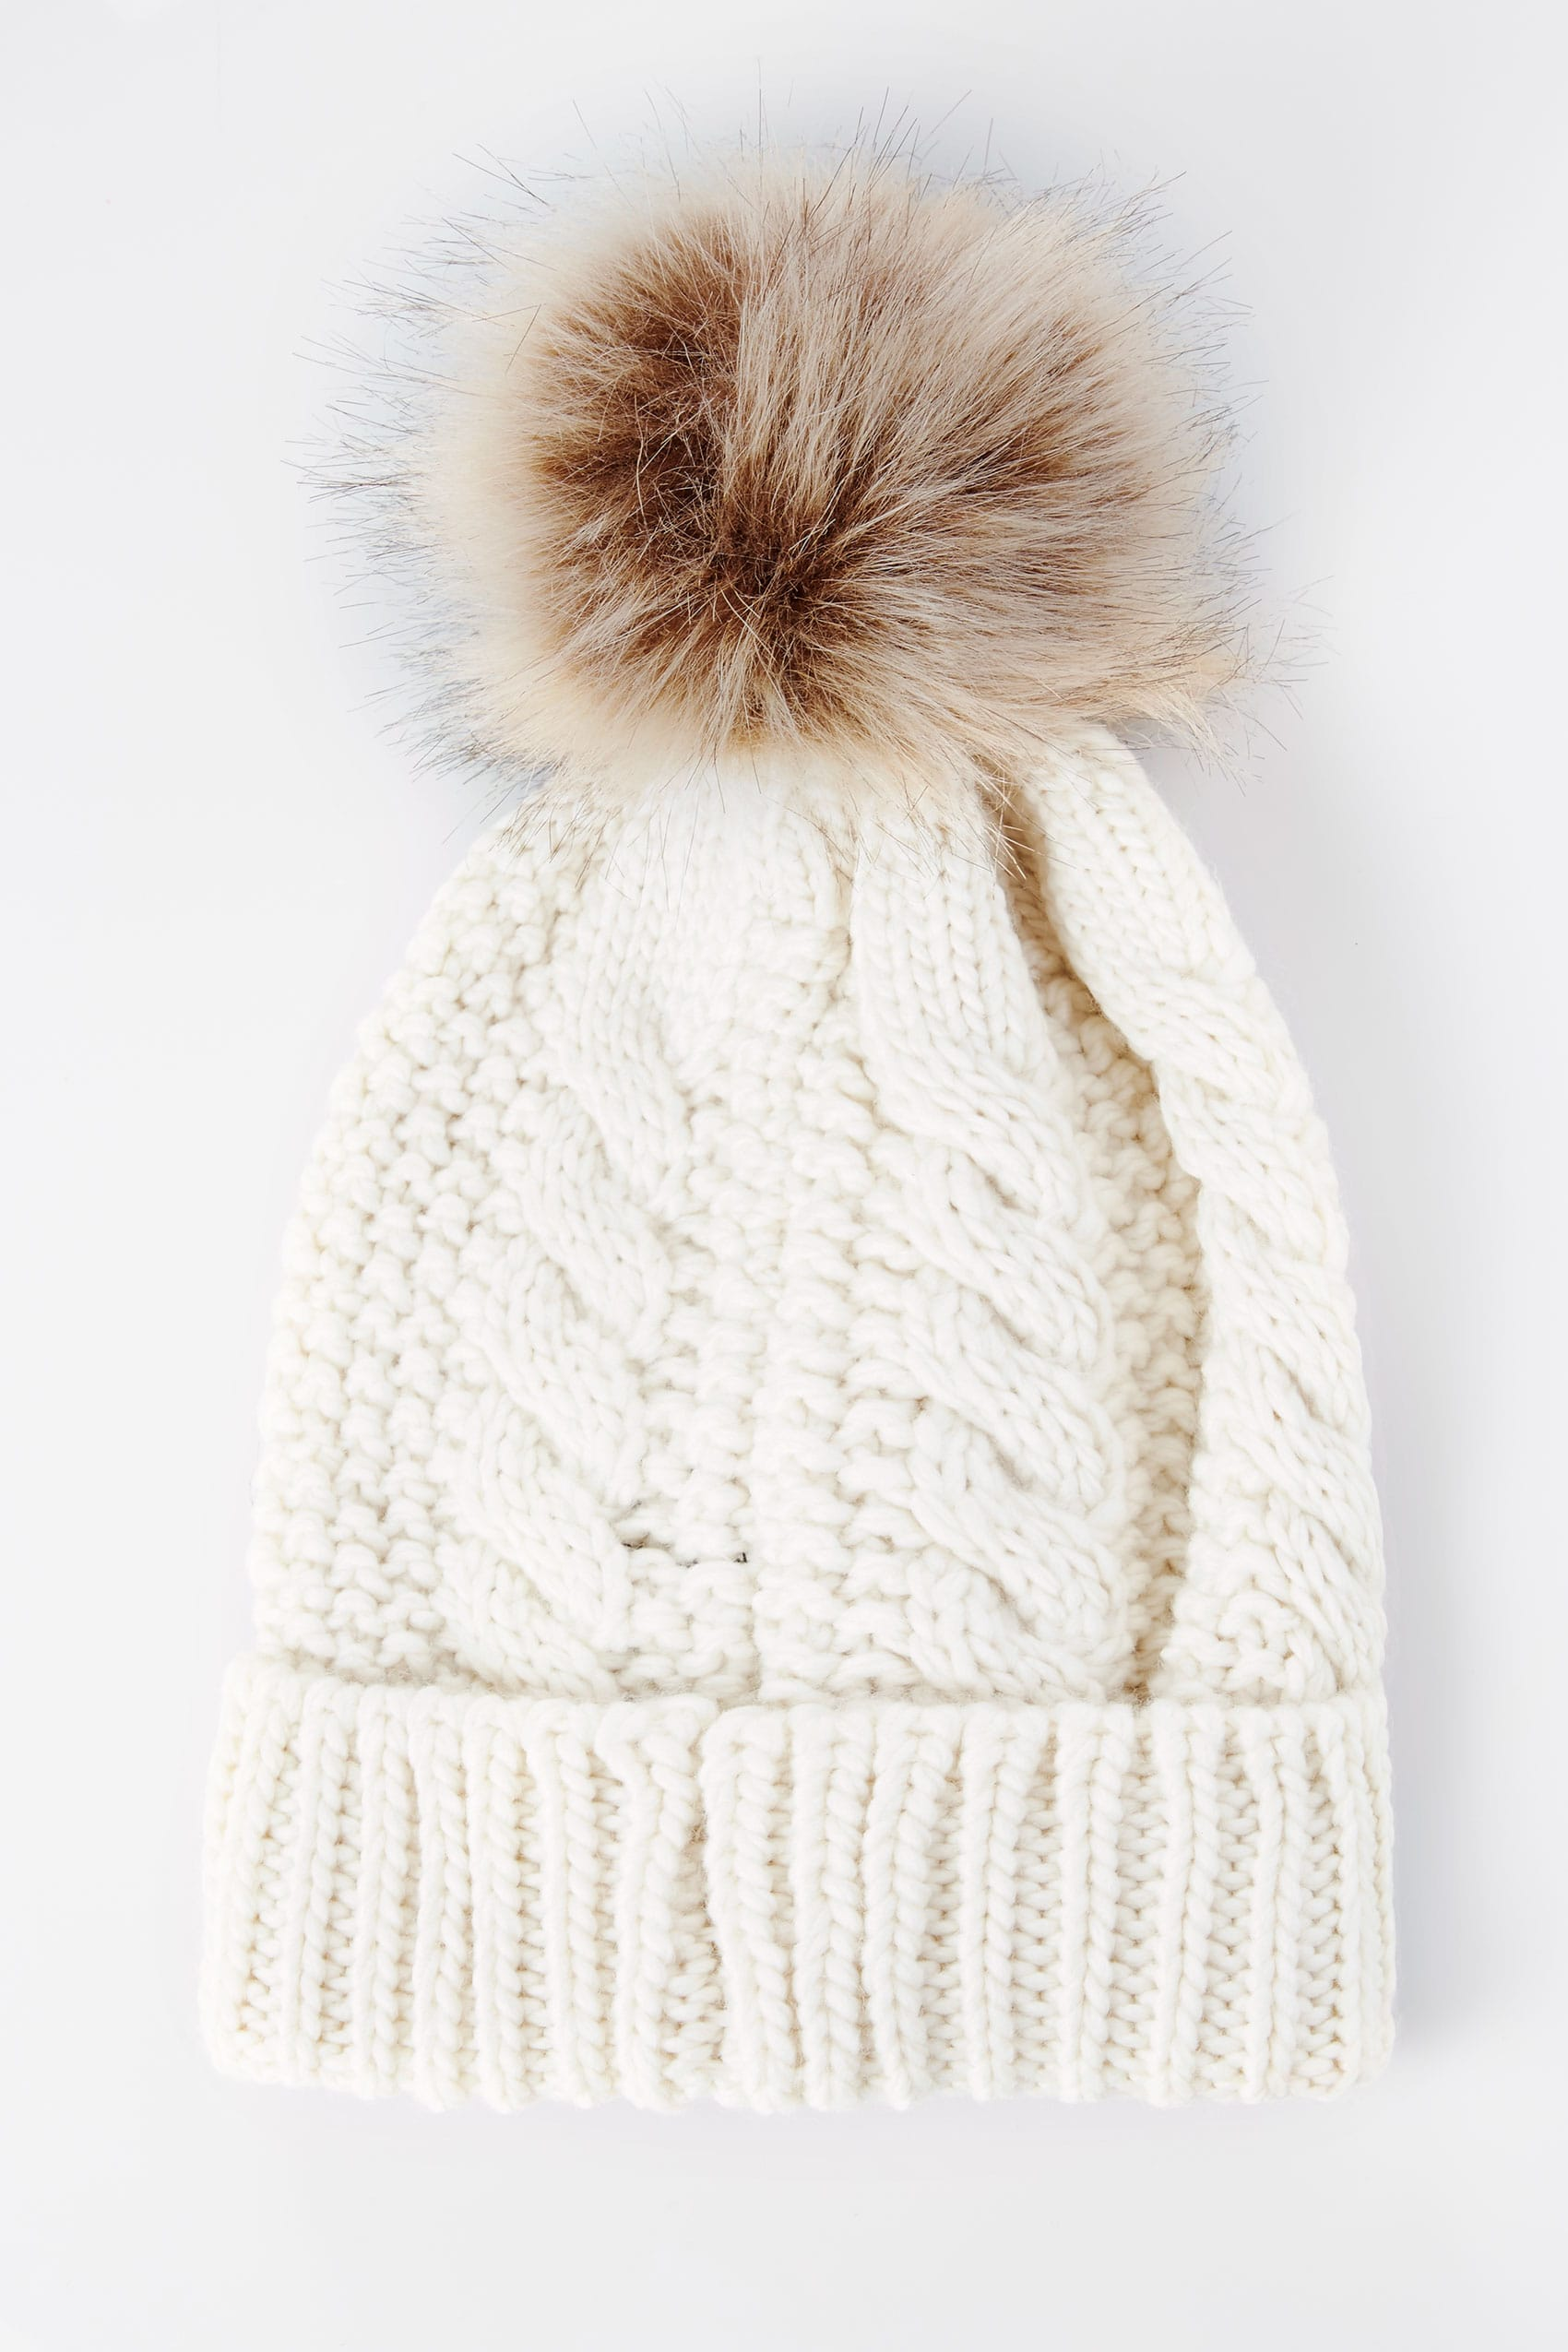 Cream Cable Knit Hat With Pom-Pom 7d30d228828